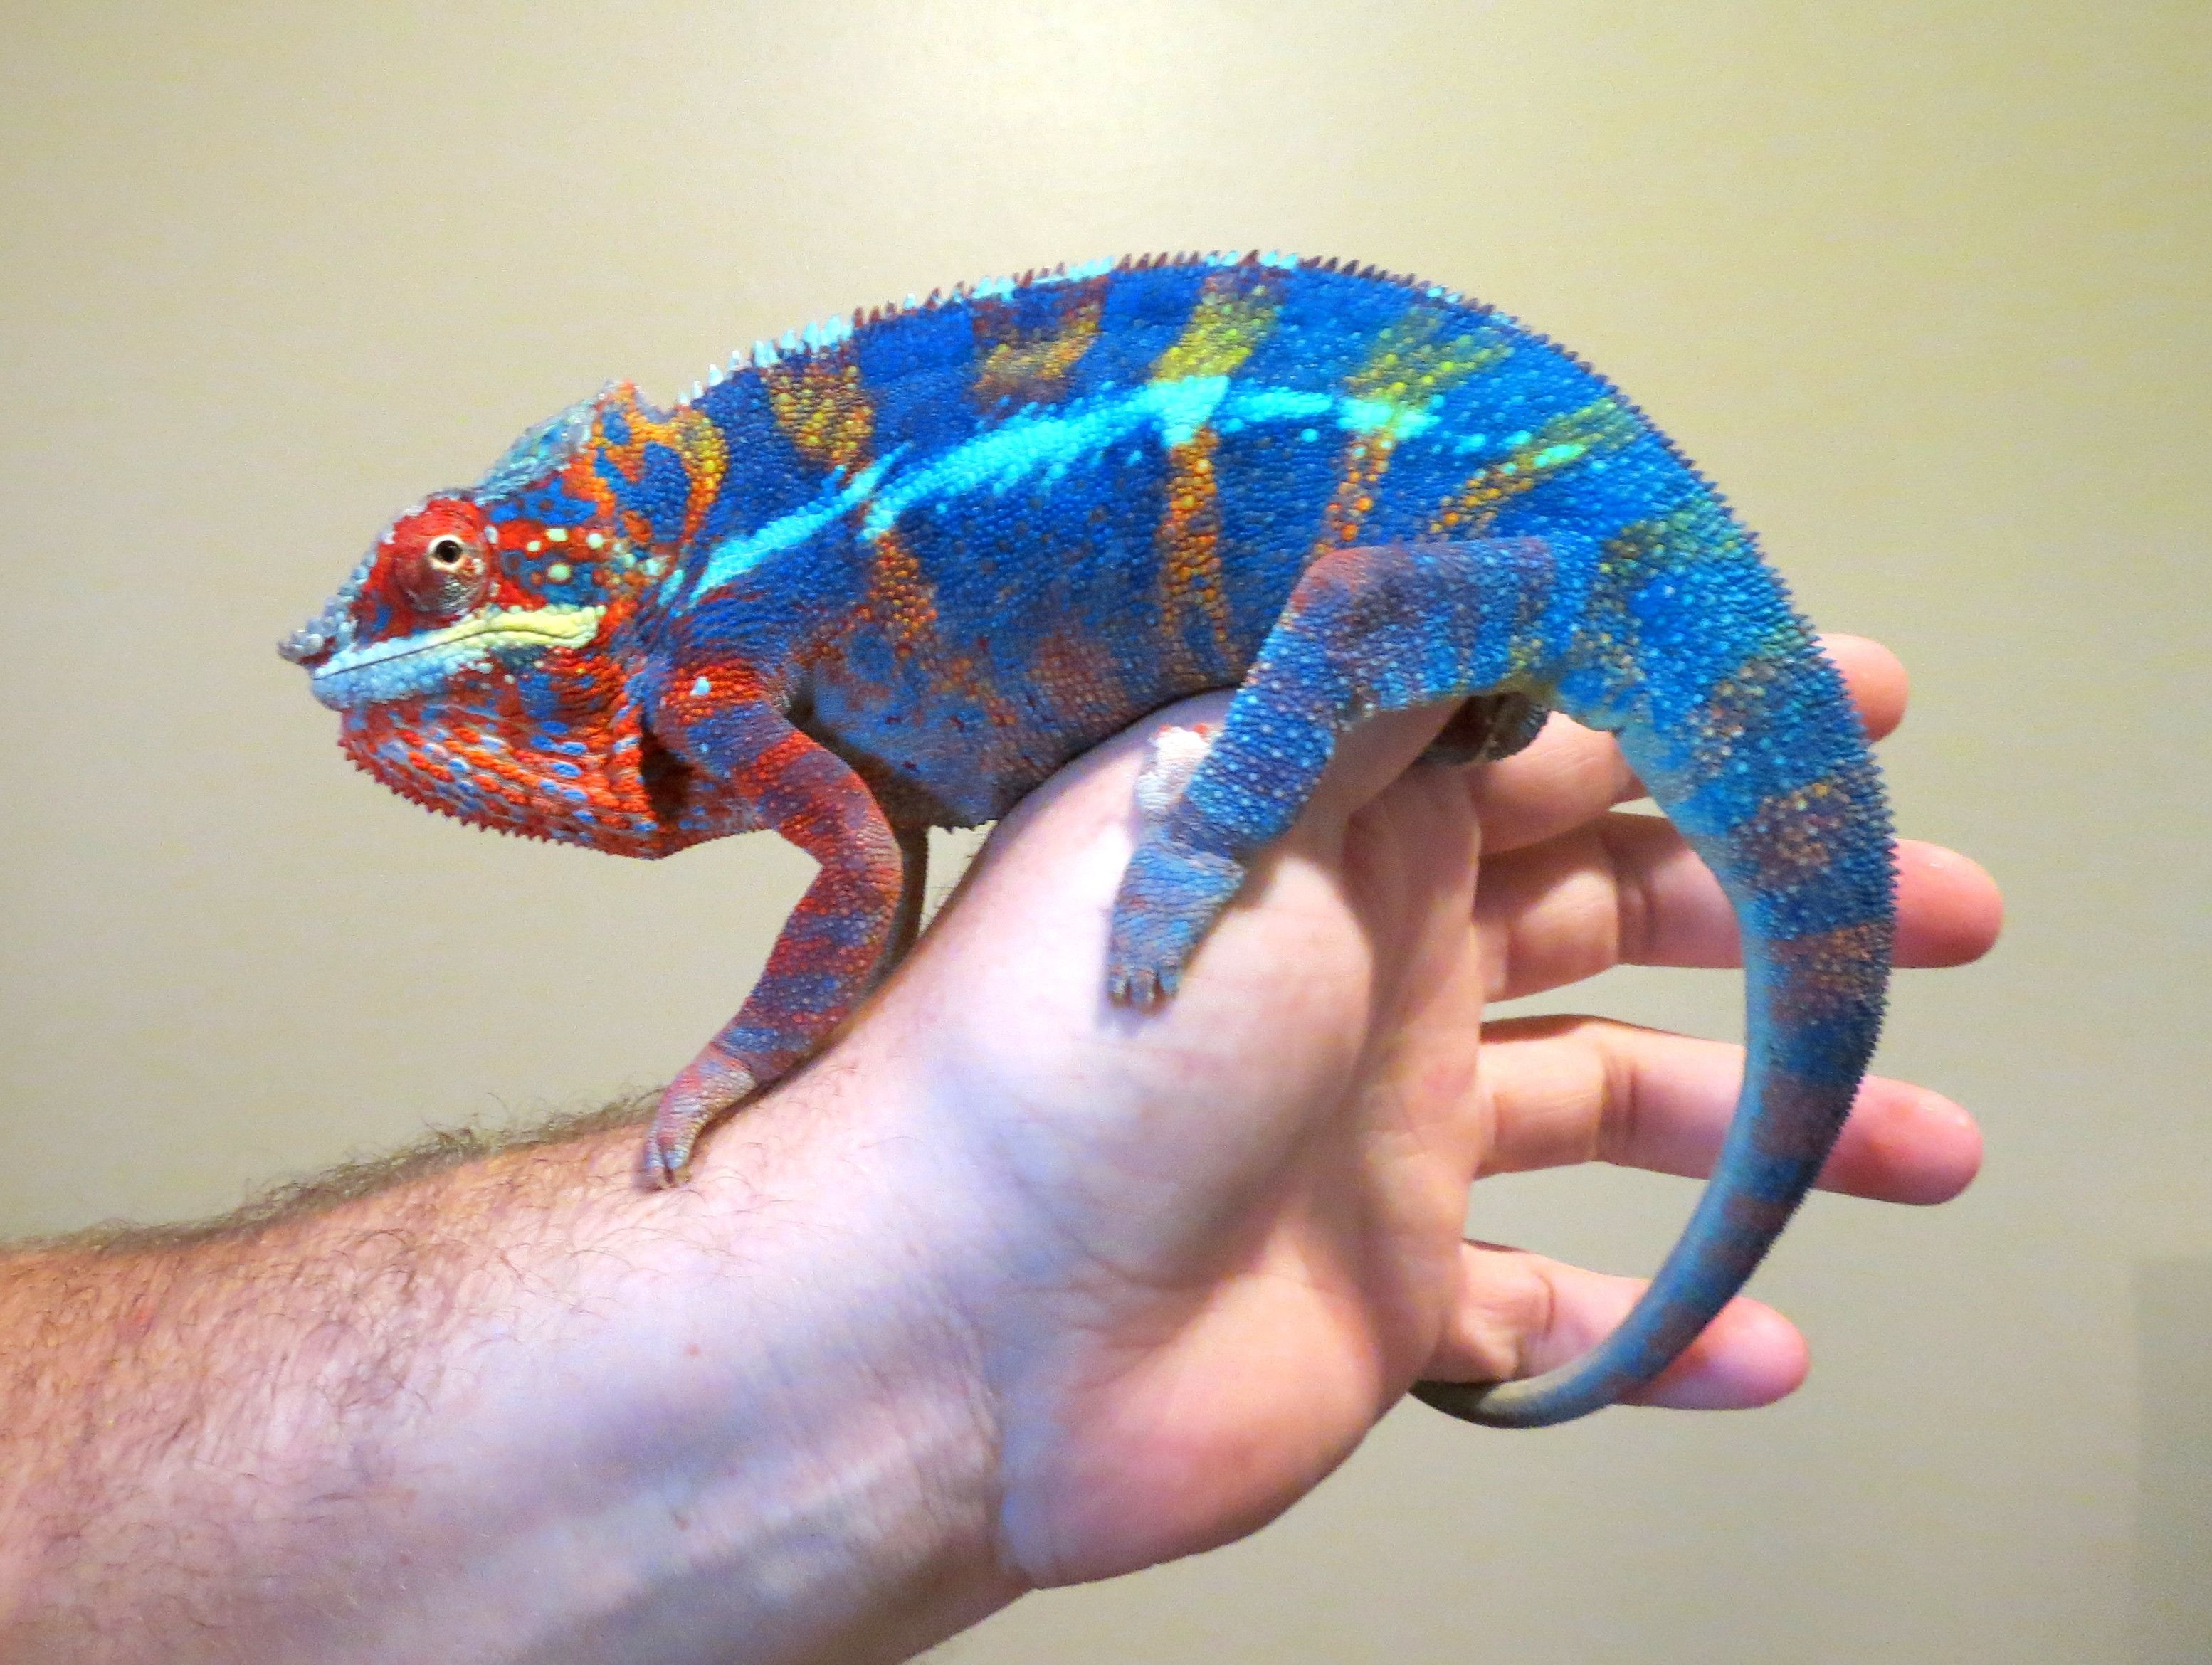 My pet is more colorful when he is angry Rainforest